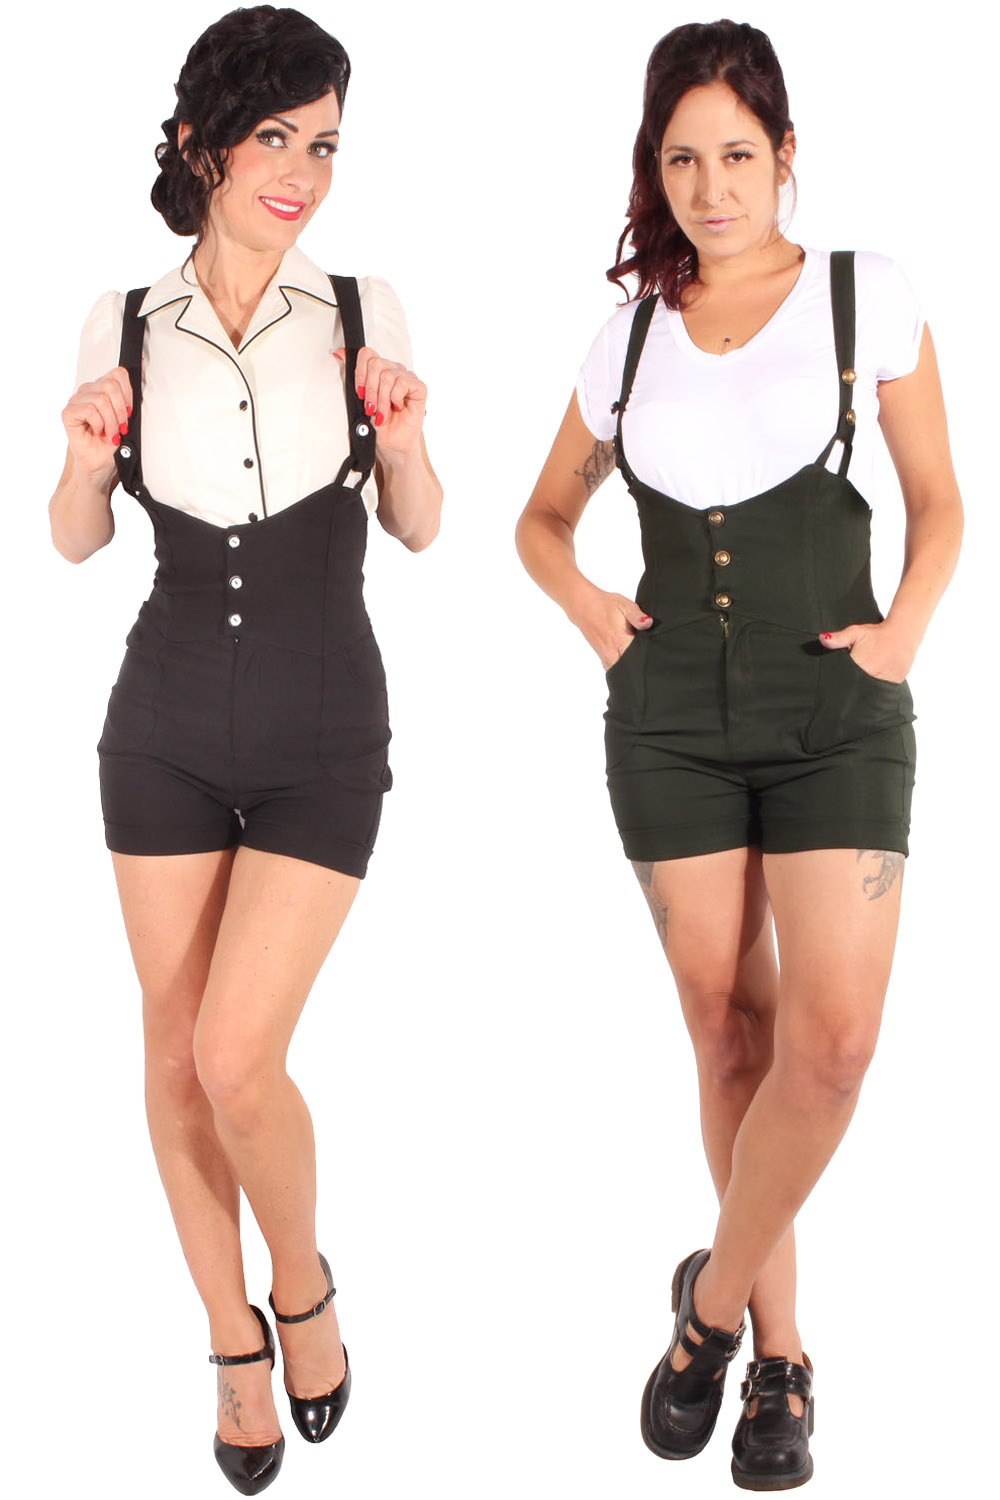 Retro high waist rockabilly Hosenträger Latzhose Uniform Shorts